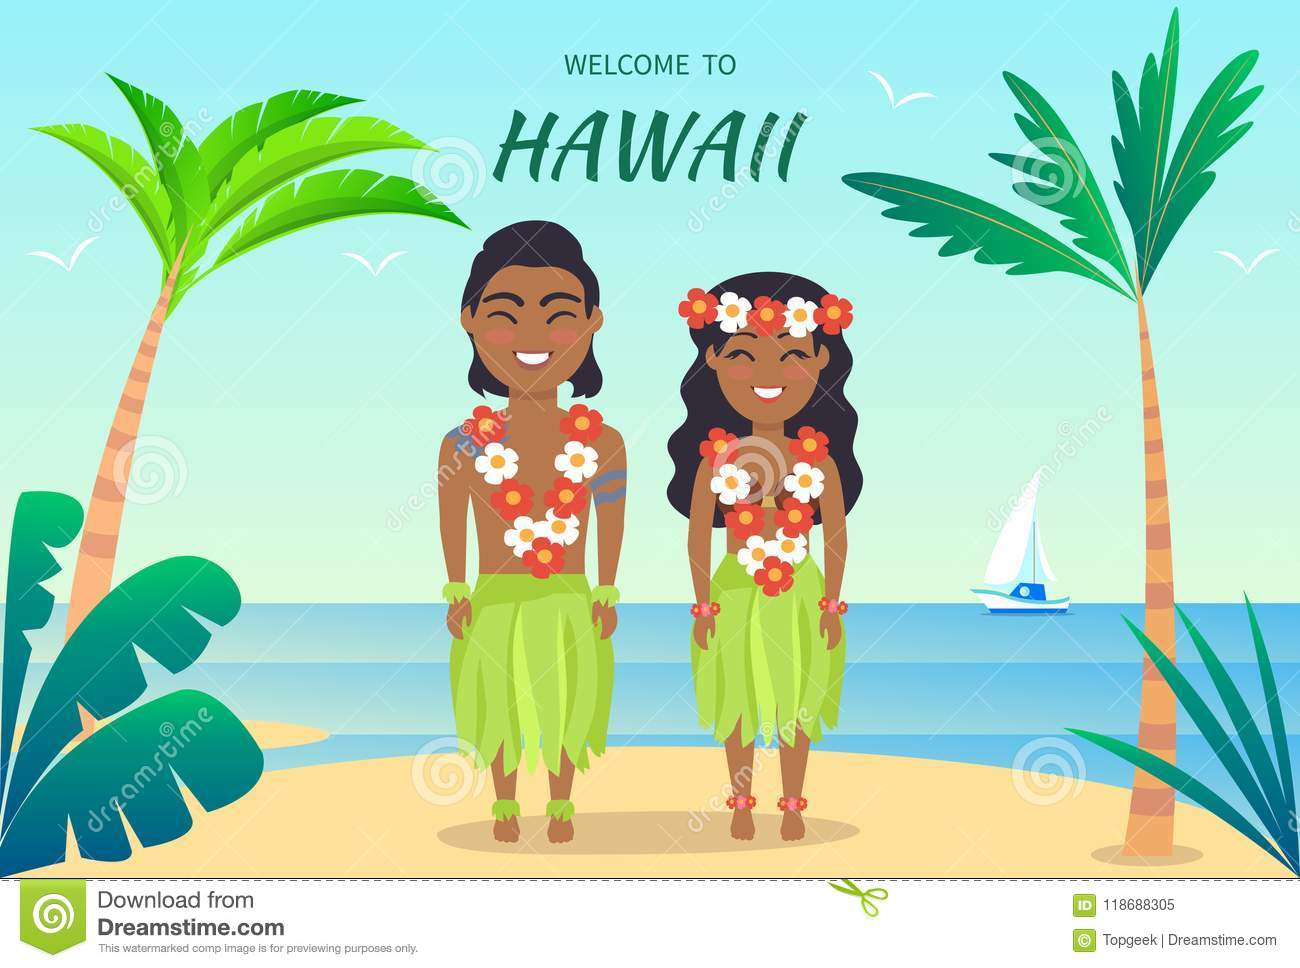 Welcome to hawaii poster on vector illustration stock vector welcome to hawaii poster hawaiian people greeting tourists man and woman dressed in leaves and luau made up of flowers on vector illustration m4hsunfo